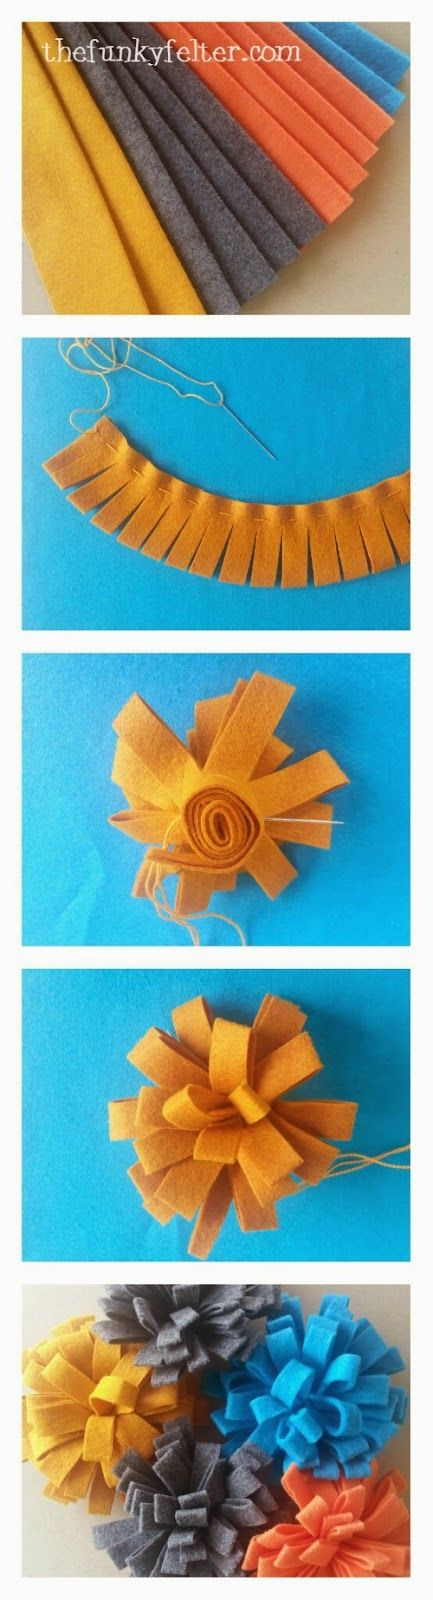 felt flower craft tutorial -- a cheap & super easy way to dress up a wreath or other home decorating...use hot glue if you aren't into stitching :)